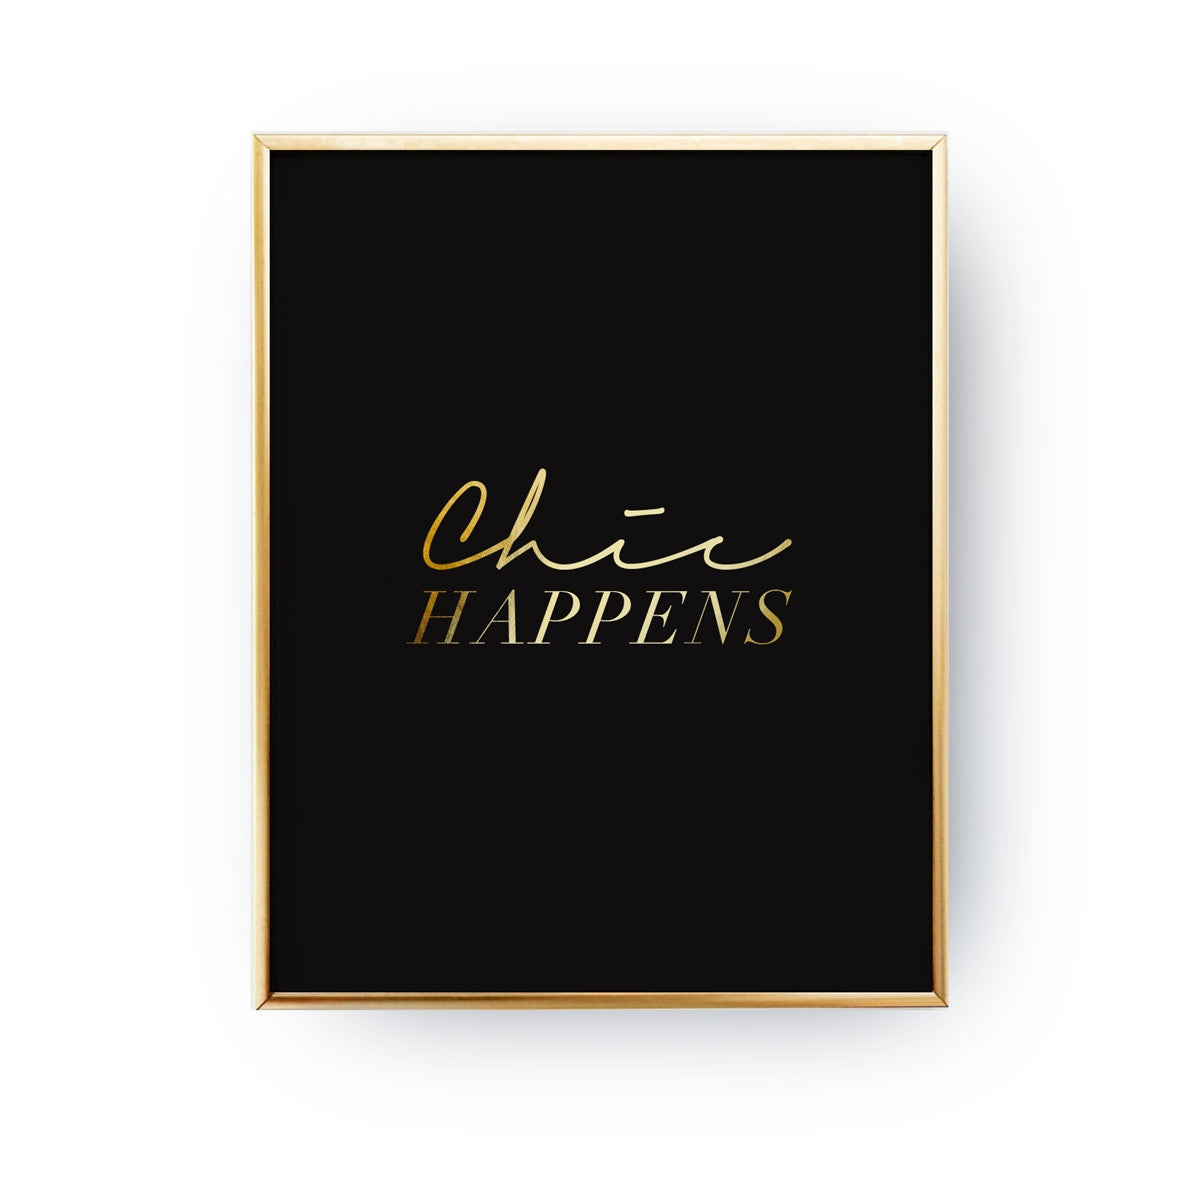 Chic happens, Poster